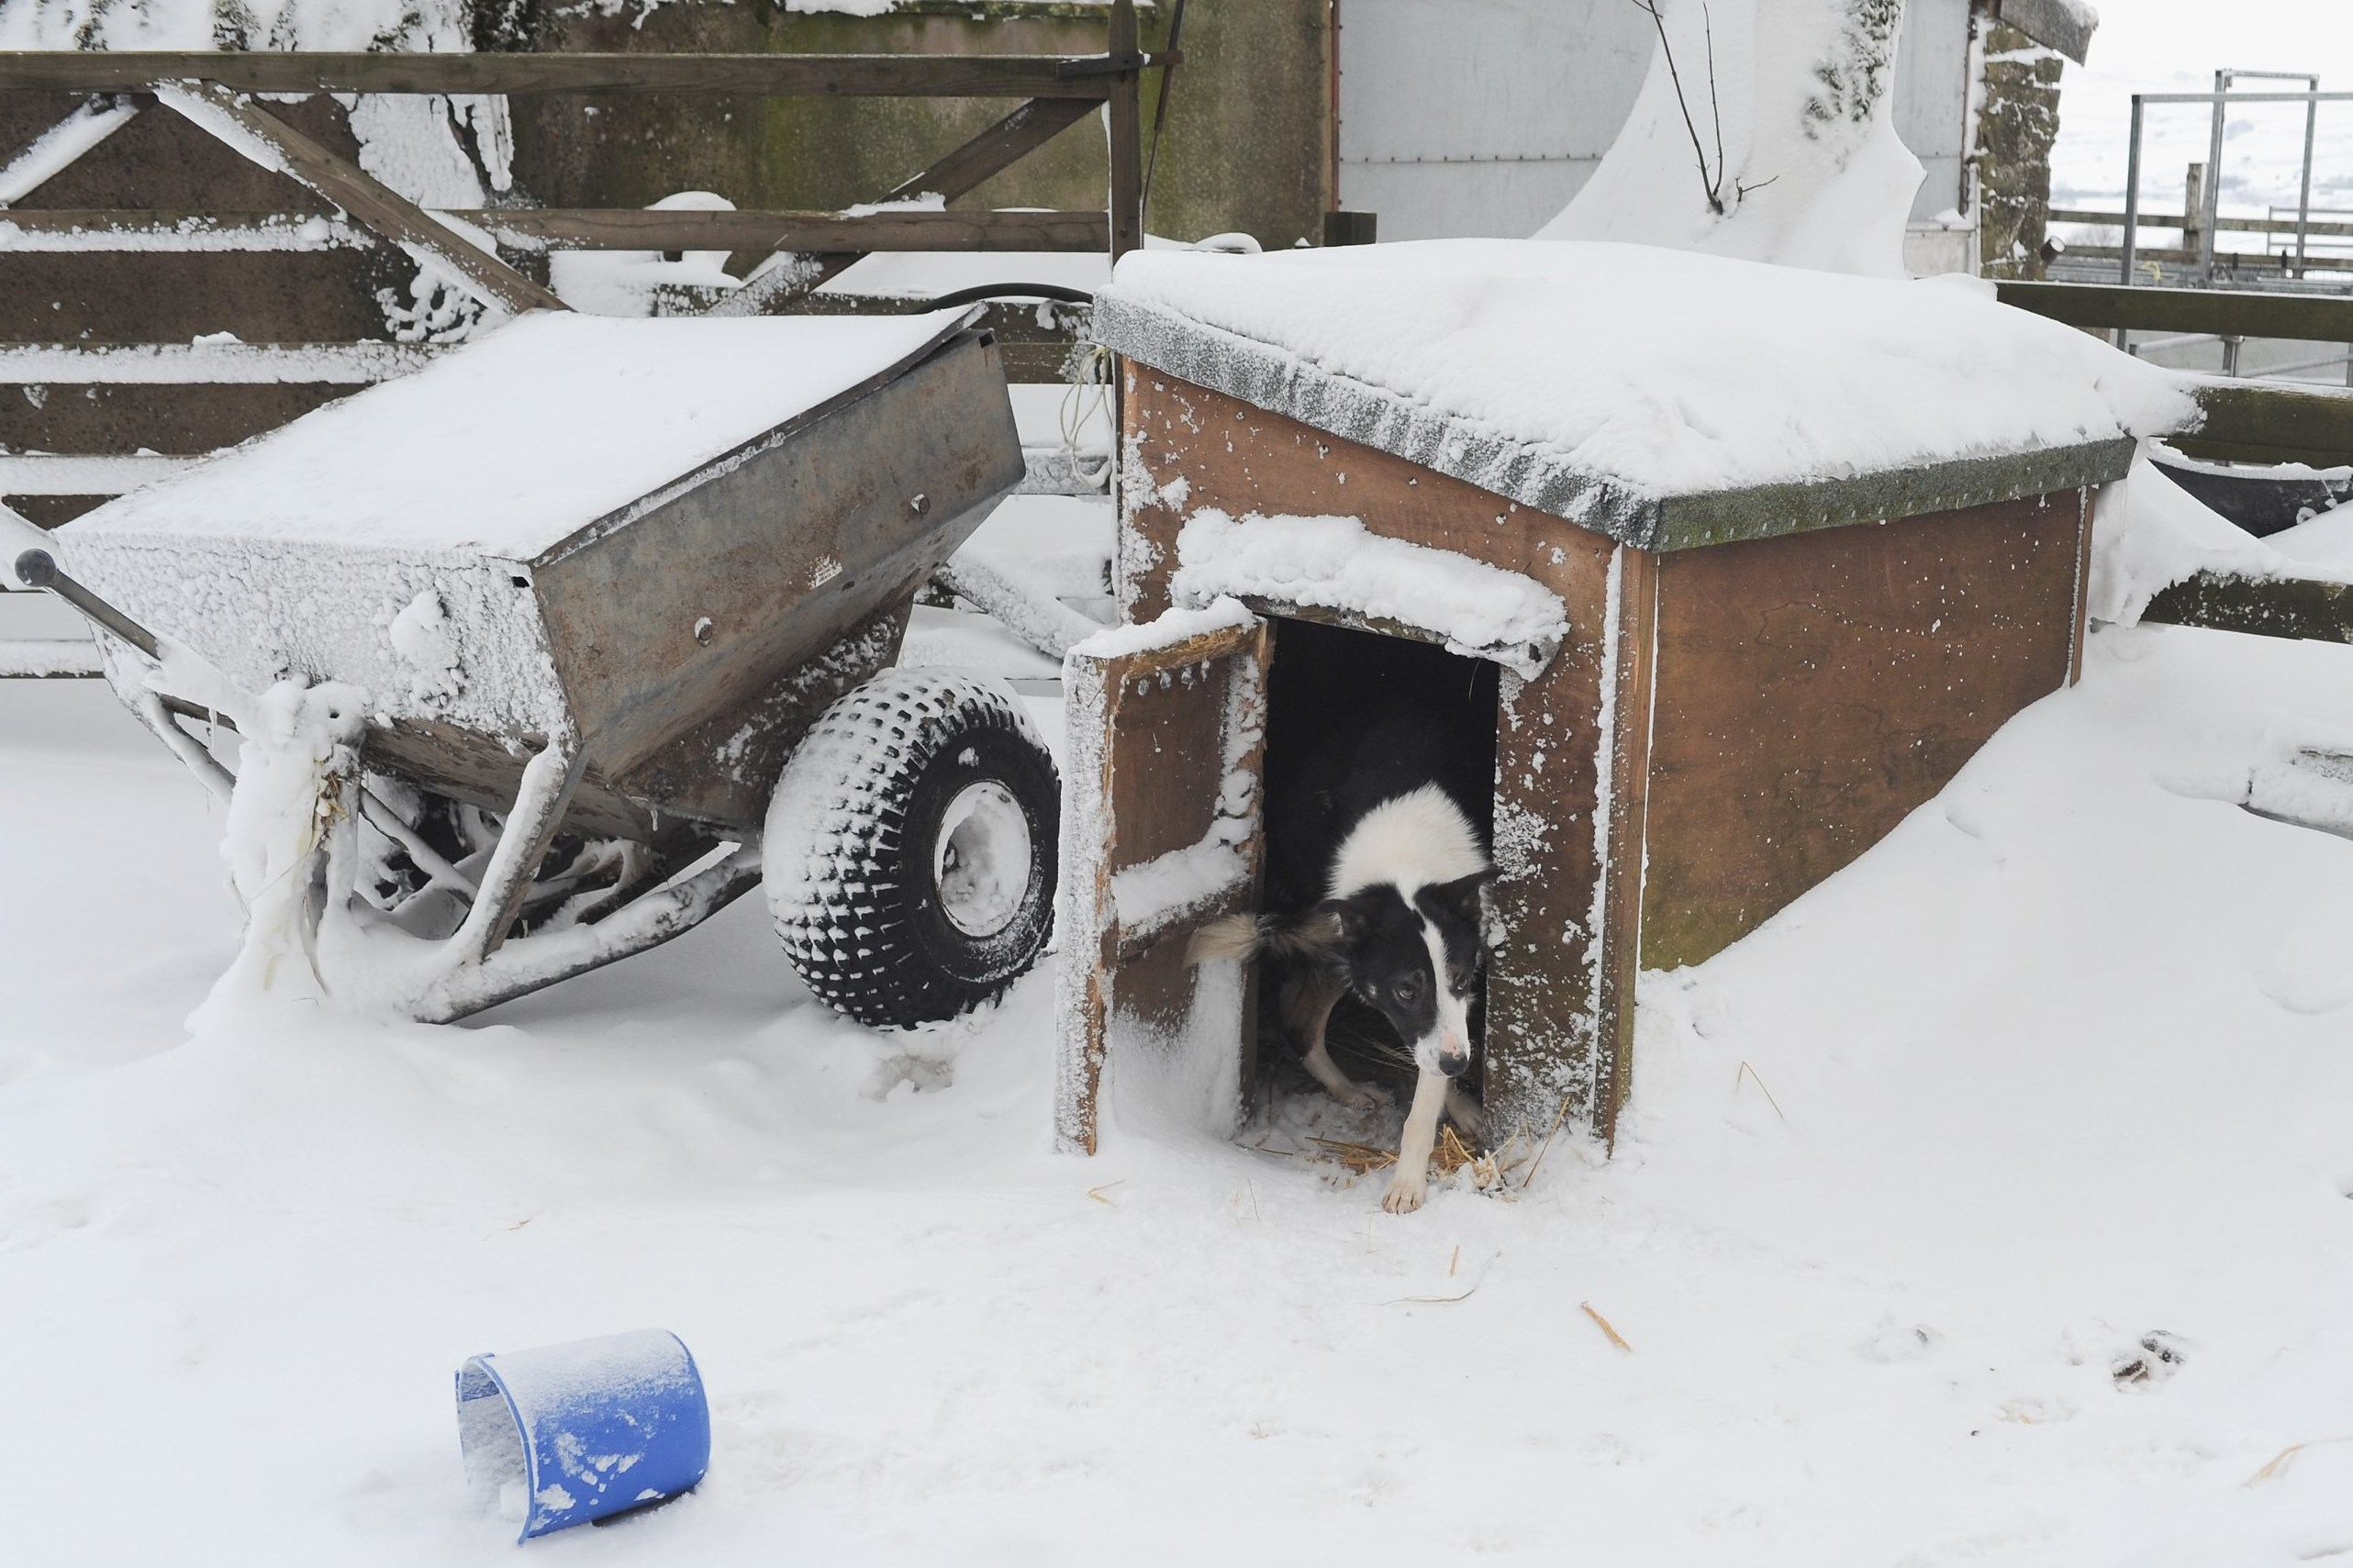 A working dog on a farm in Cumbria, England looks out of its kennel during one of last winter's storms. Outdoor dogs valued by their people have houses or kennels that shield them from rain, wind, cold and extreme summer heat.